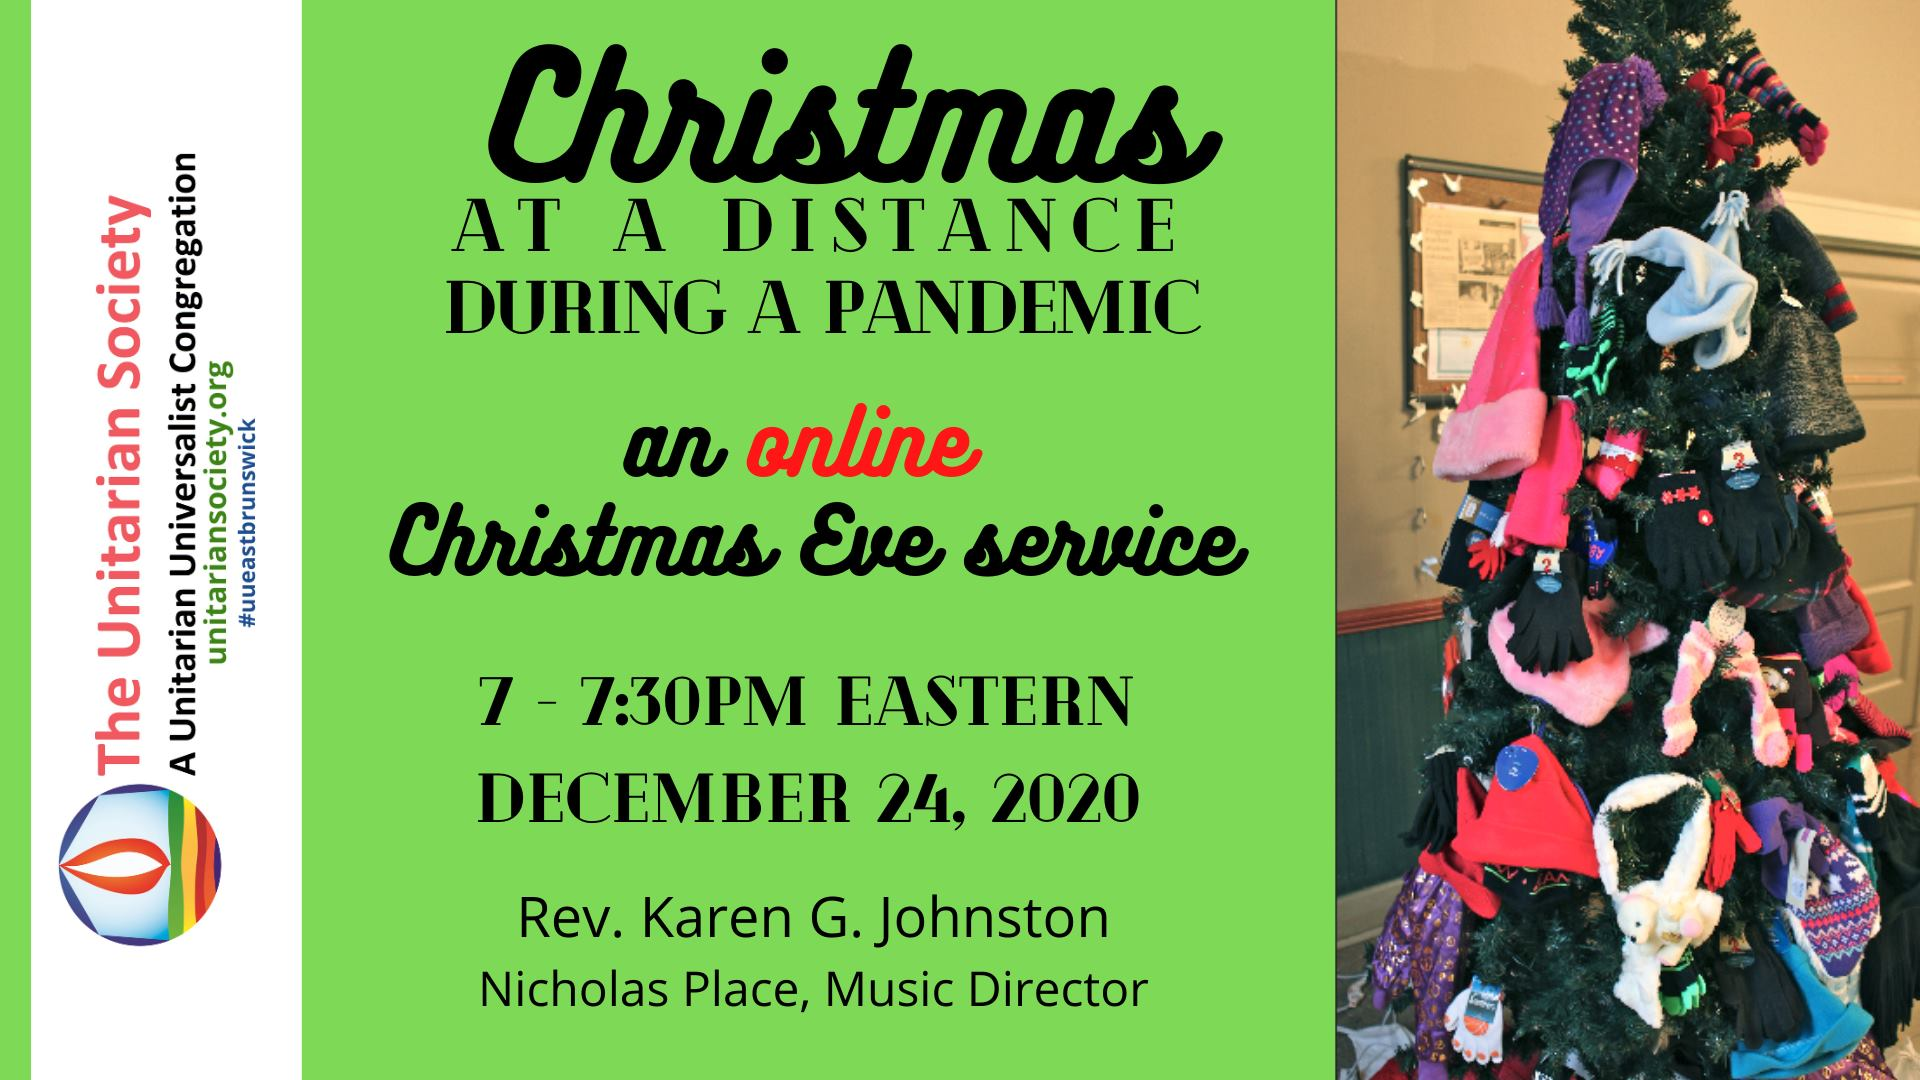 Christmas Eve service – online 7pm-7:30pm